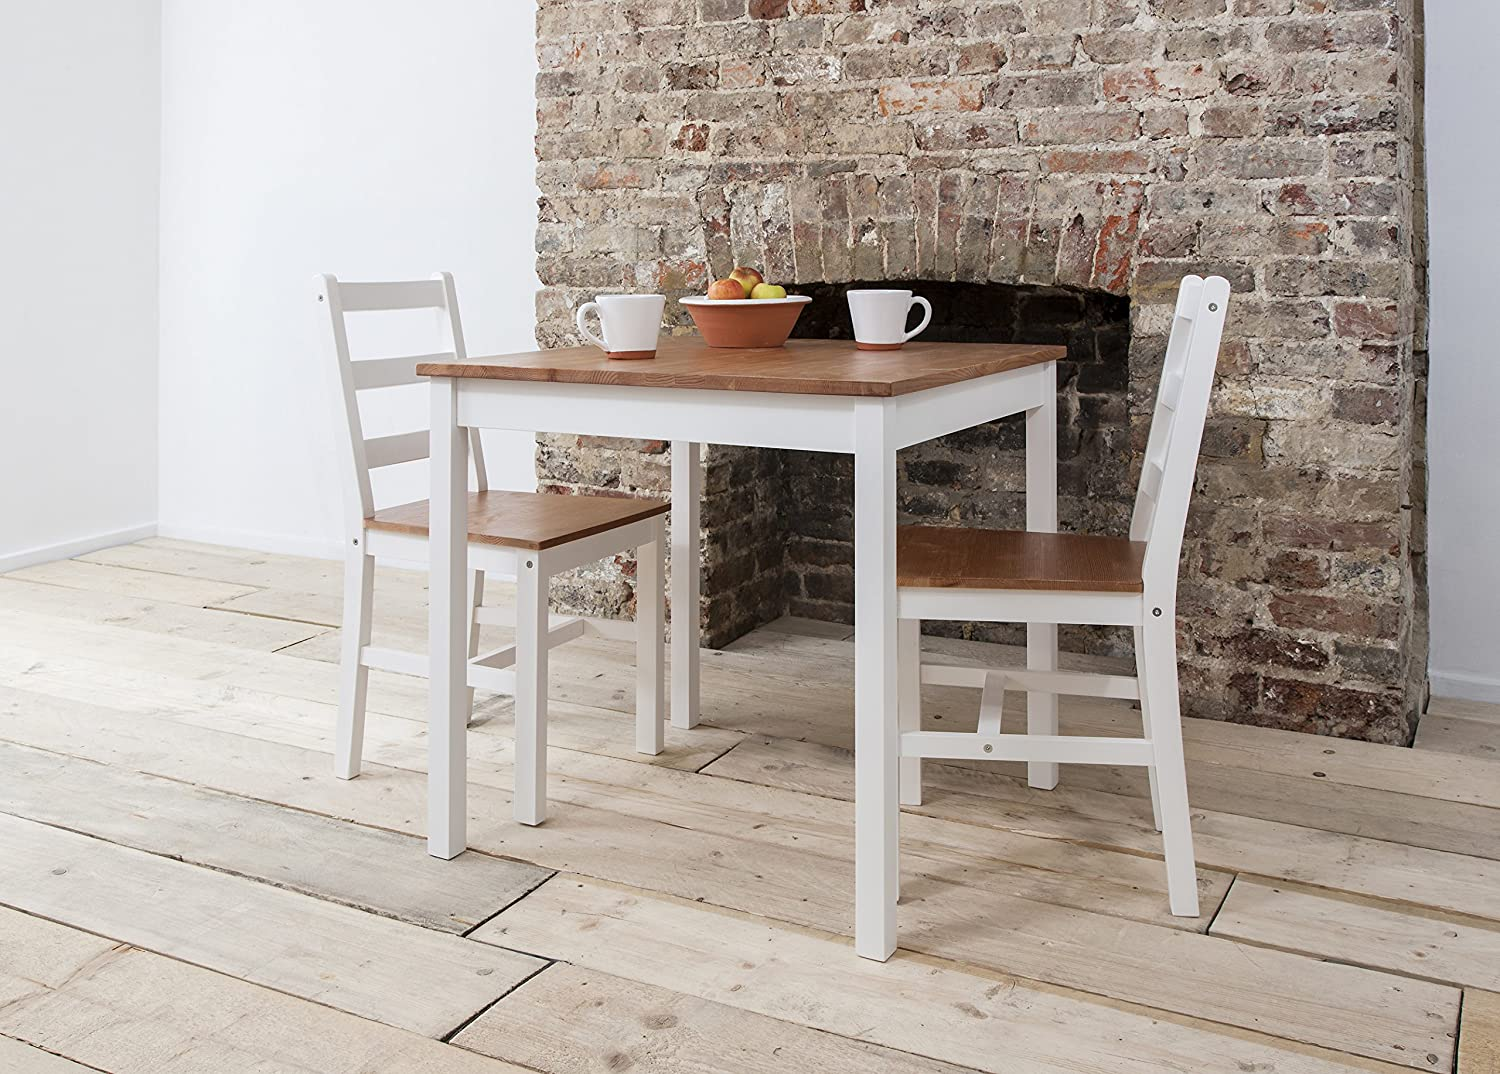 Nice Dining Table And 2 Chairs , Dining Set Bistro (White U0026 Natural Pine):  Amazon.co.uk: Kitchen U0026 Home